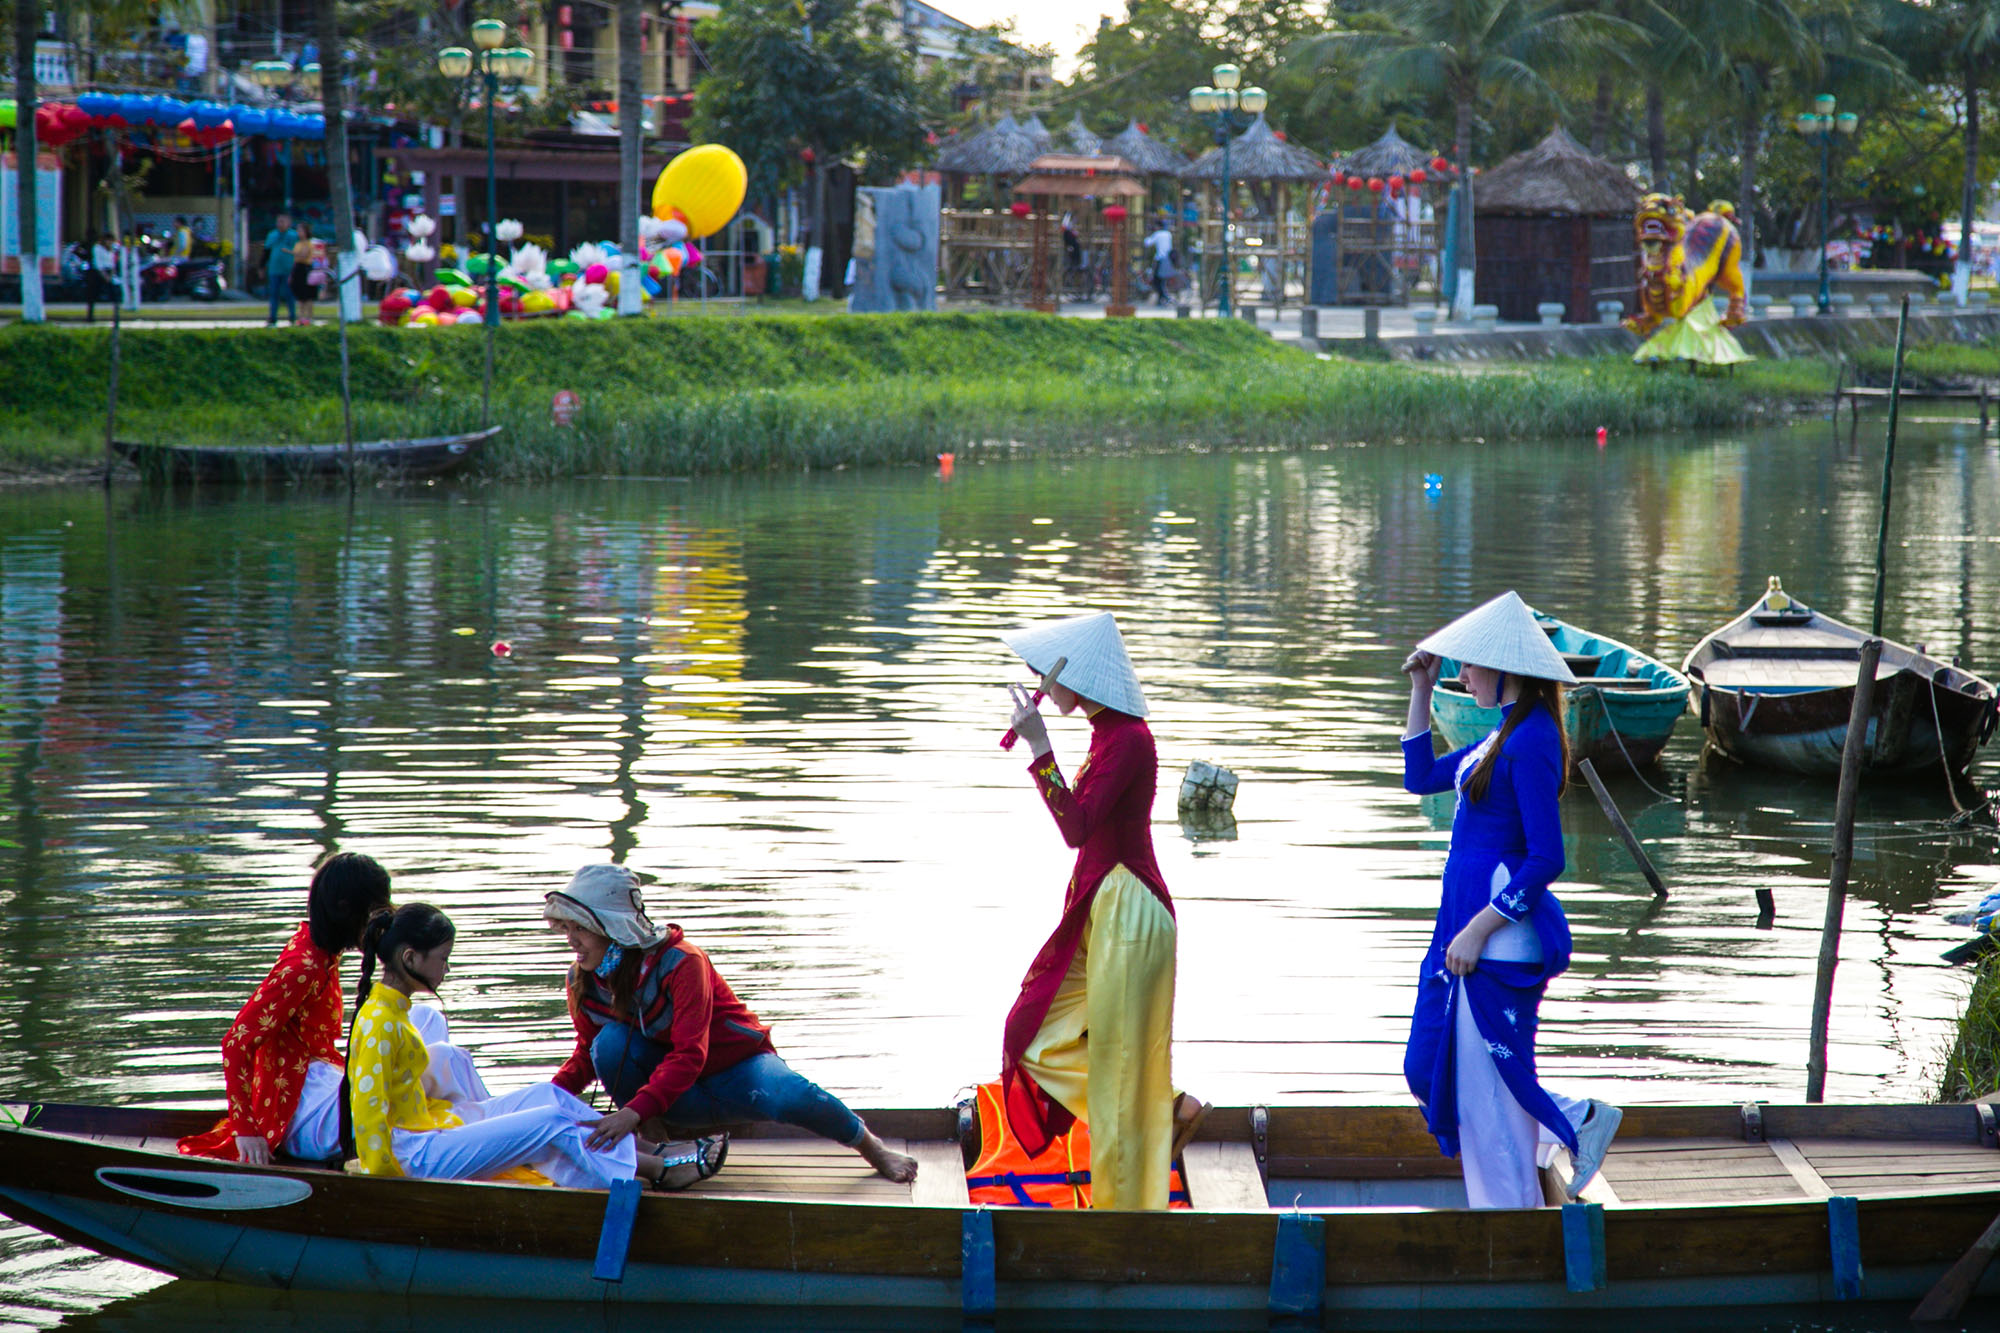 One Day In Hoi An: What to See and Do - The Christina's Blog